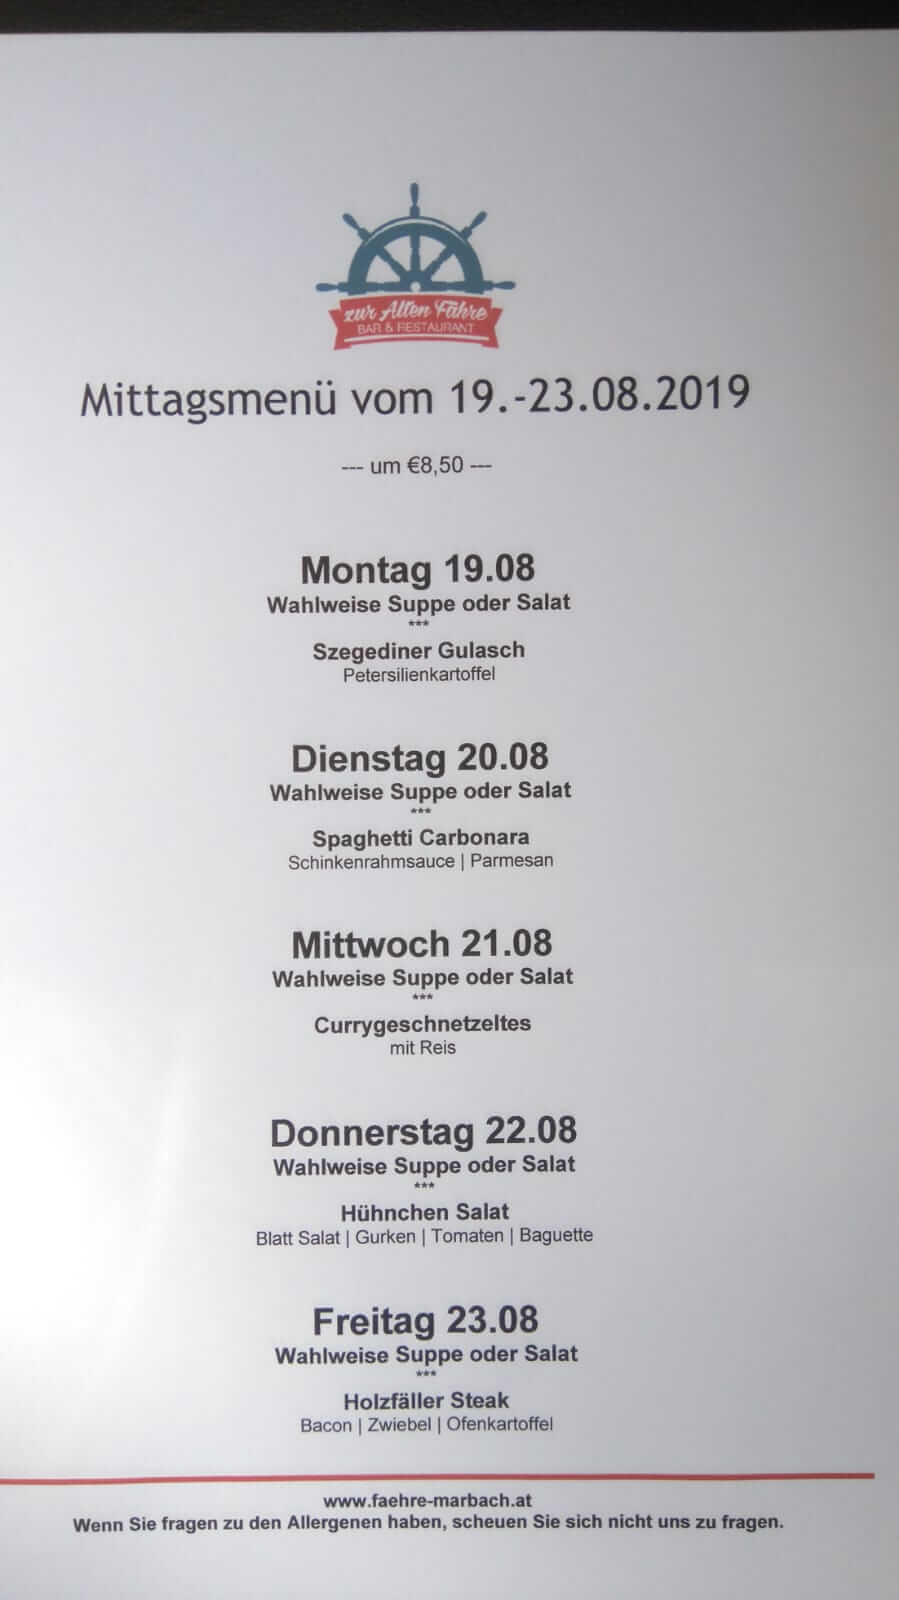 Mittagsmenü 19 August - 23 August 2019